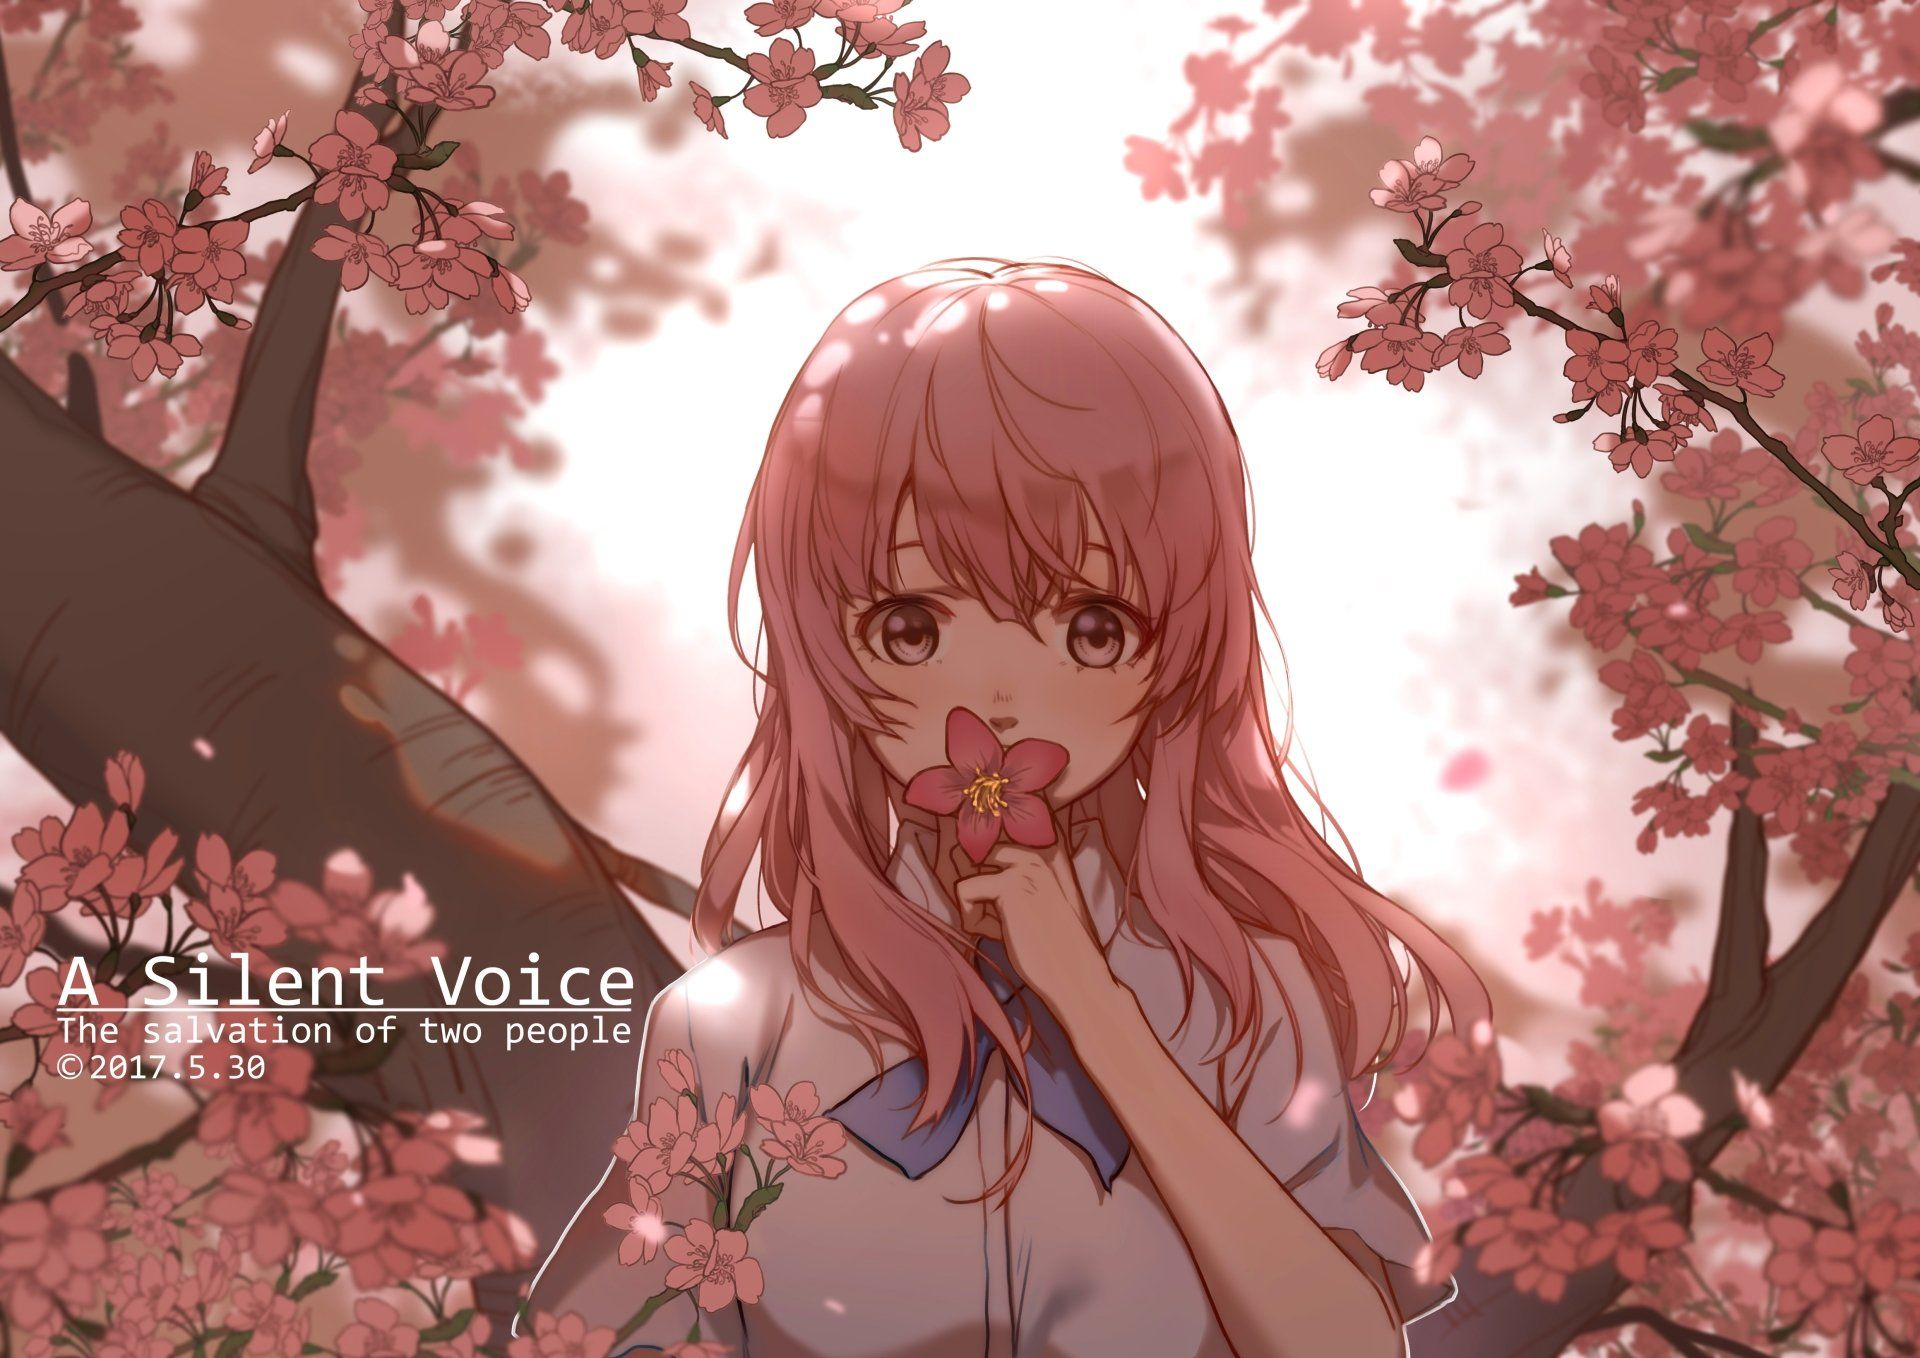 Anime Koe No Katachi Pink Hair Shouko Nishimiya Cherry Blossom Wallpaper Anime Films Anime A Silent Voice Manga